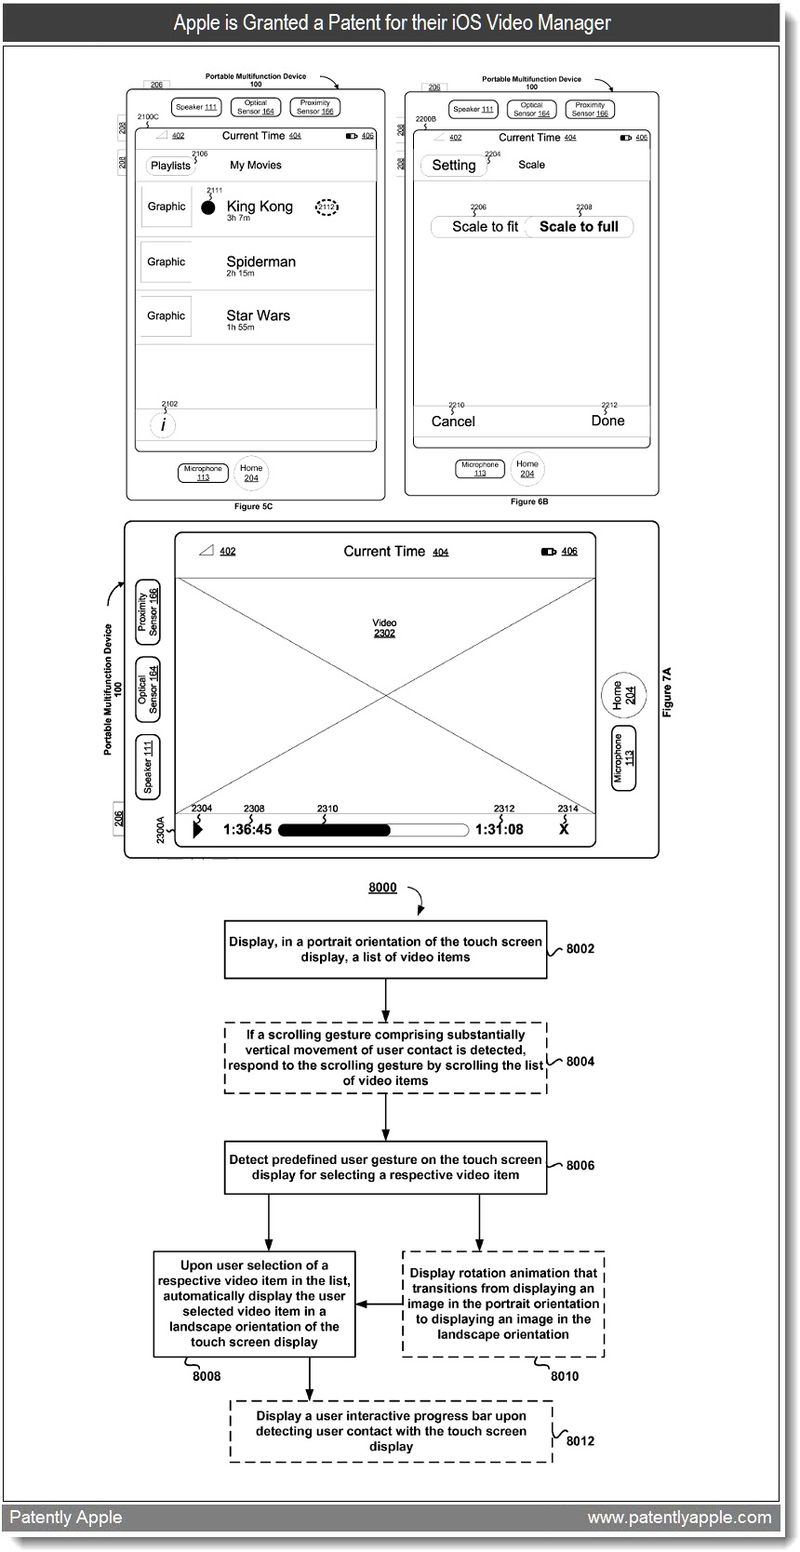 3 - Apple is granted a patent for their iOS Video Manager - June 2011